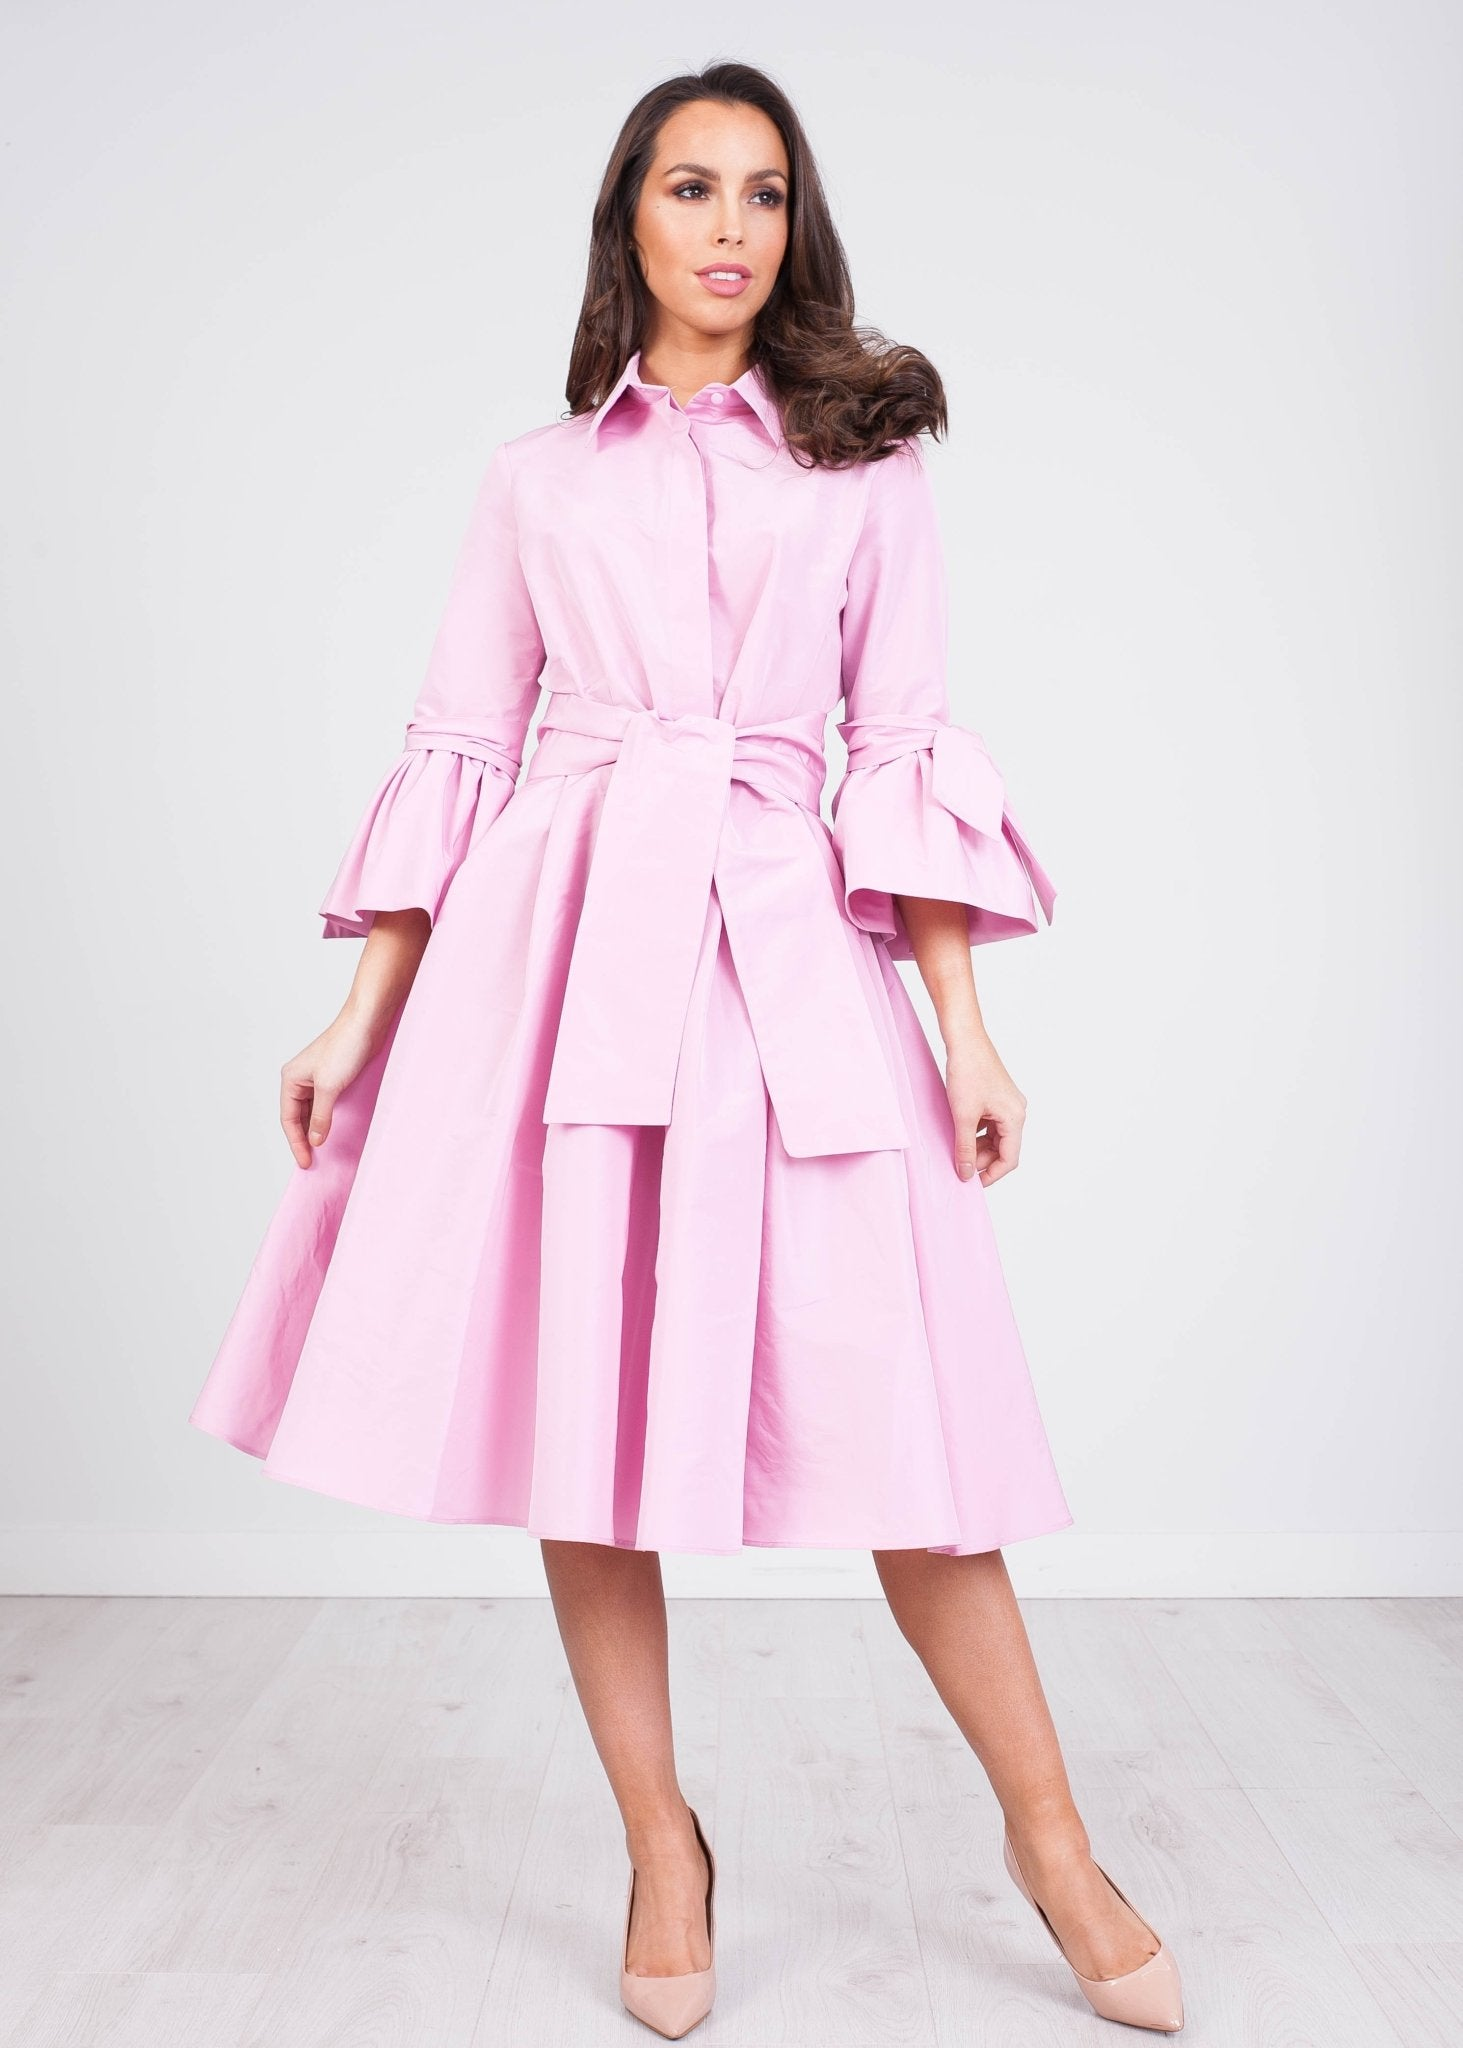 Marissa Baby Pink Dress - The Walk in Wardrobe